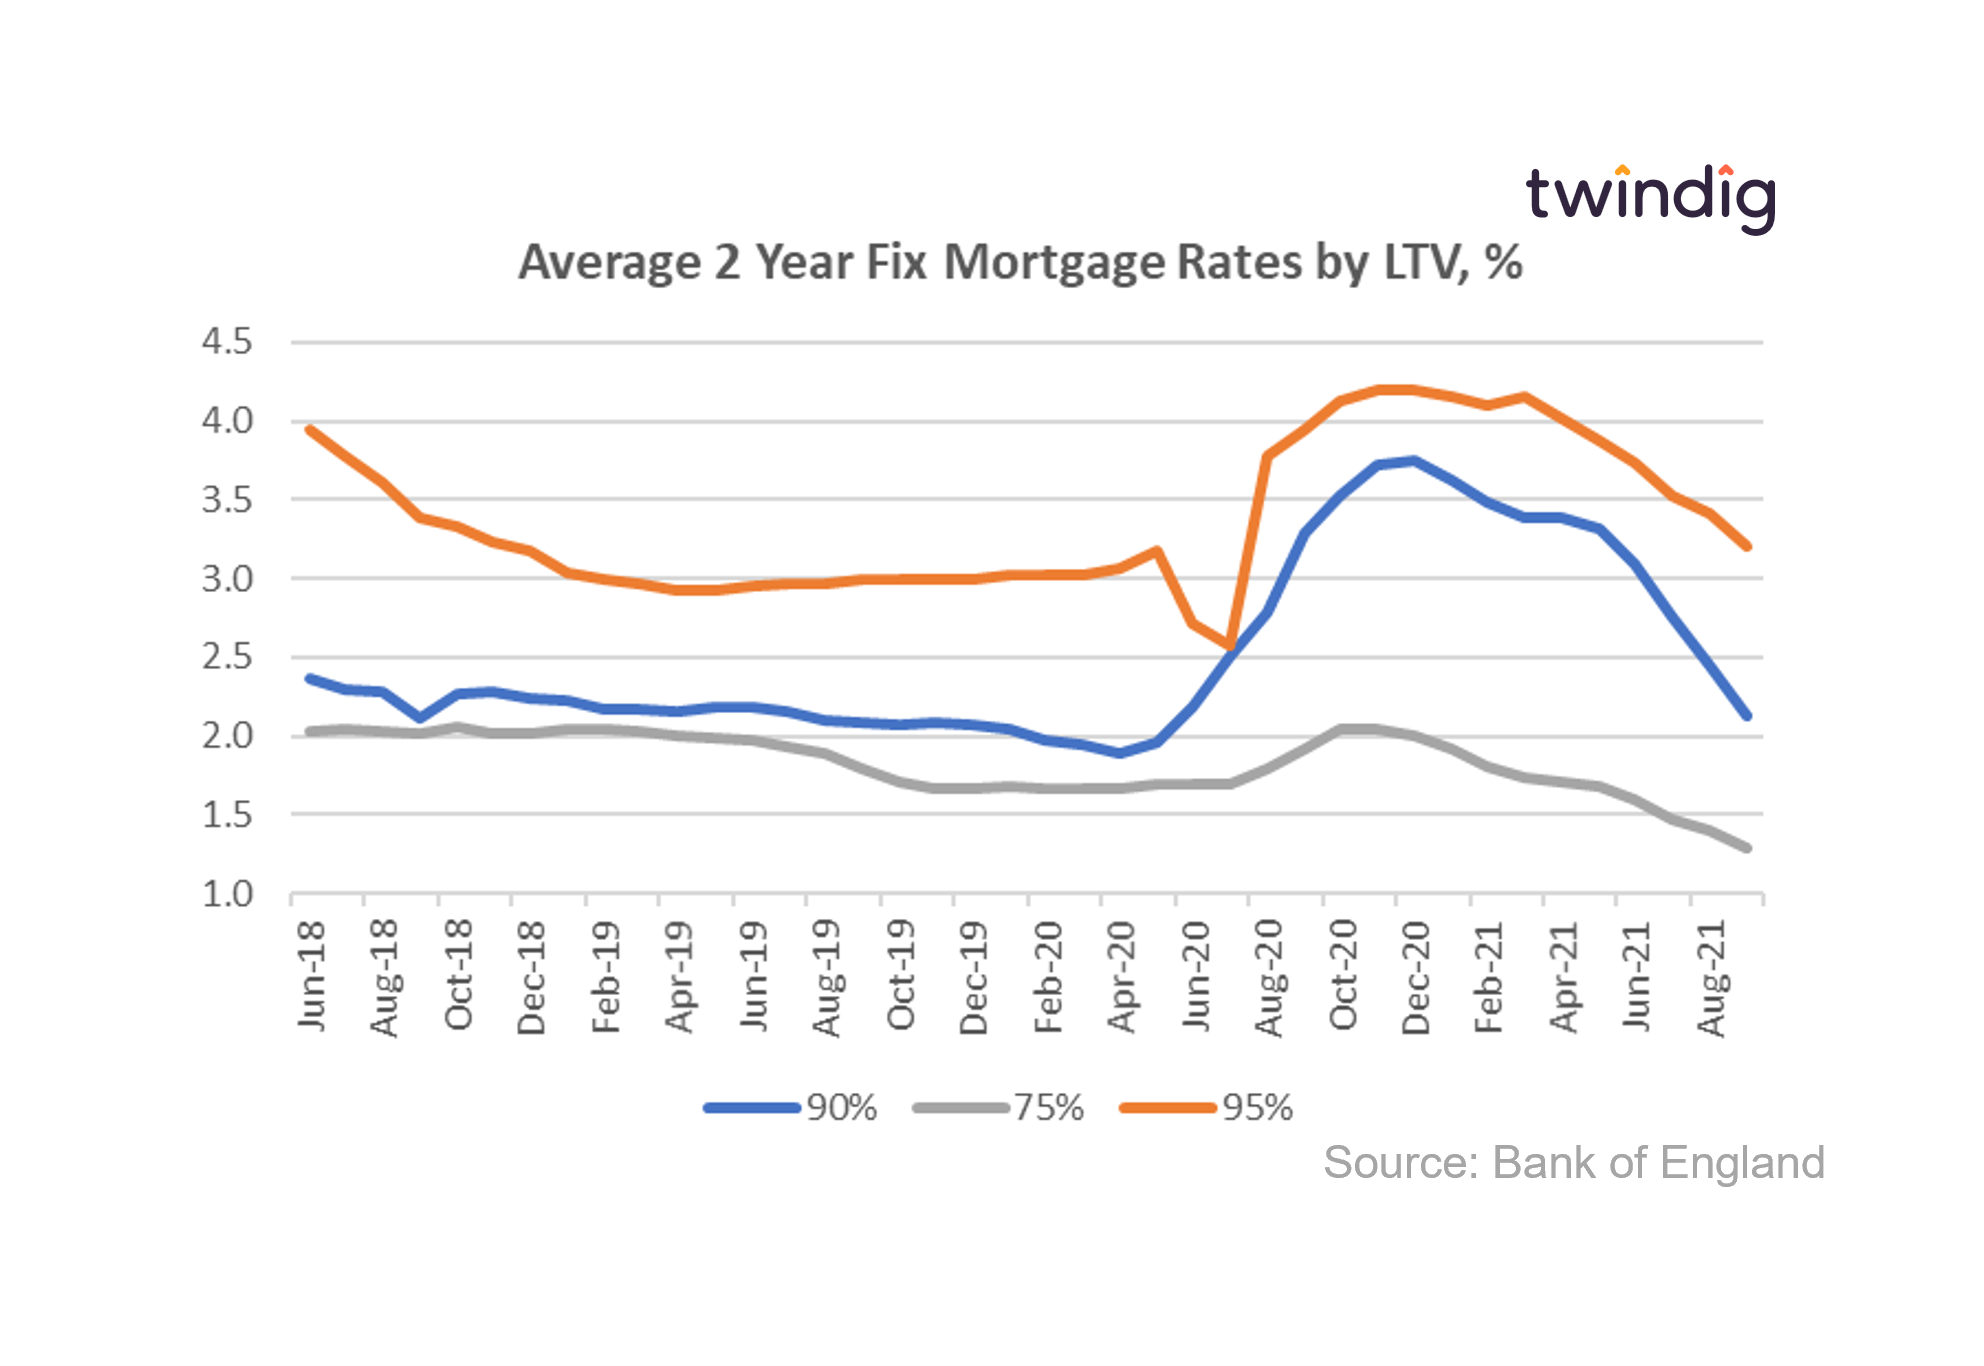 Graph chart of uk mortgage rates by Loan to value LTV up to September 2021 twindig anthony codling